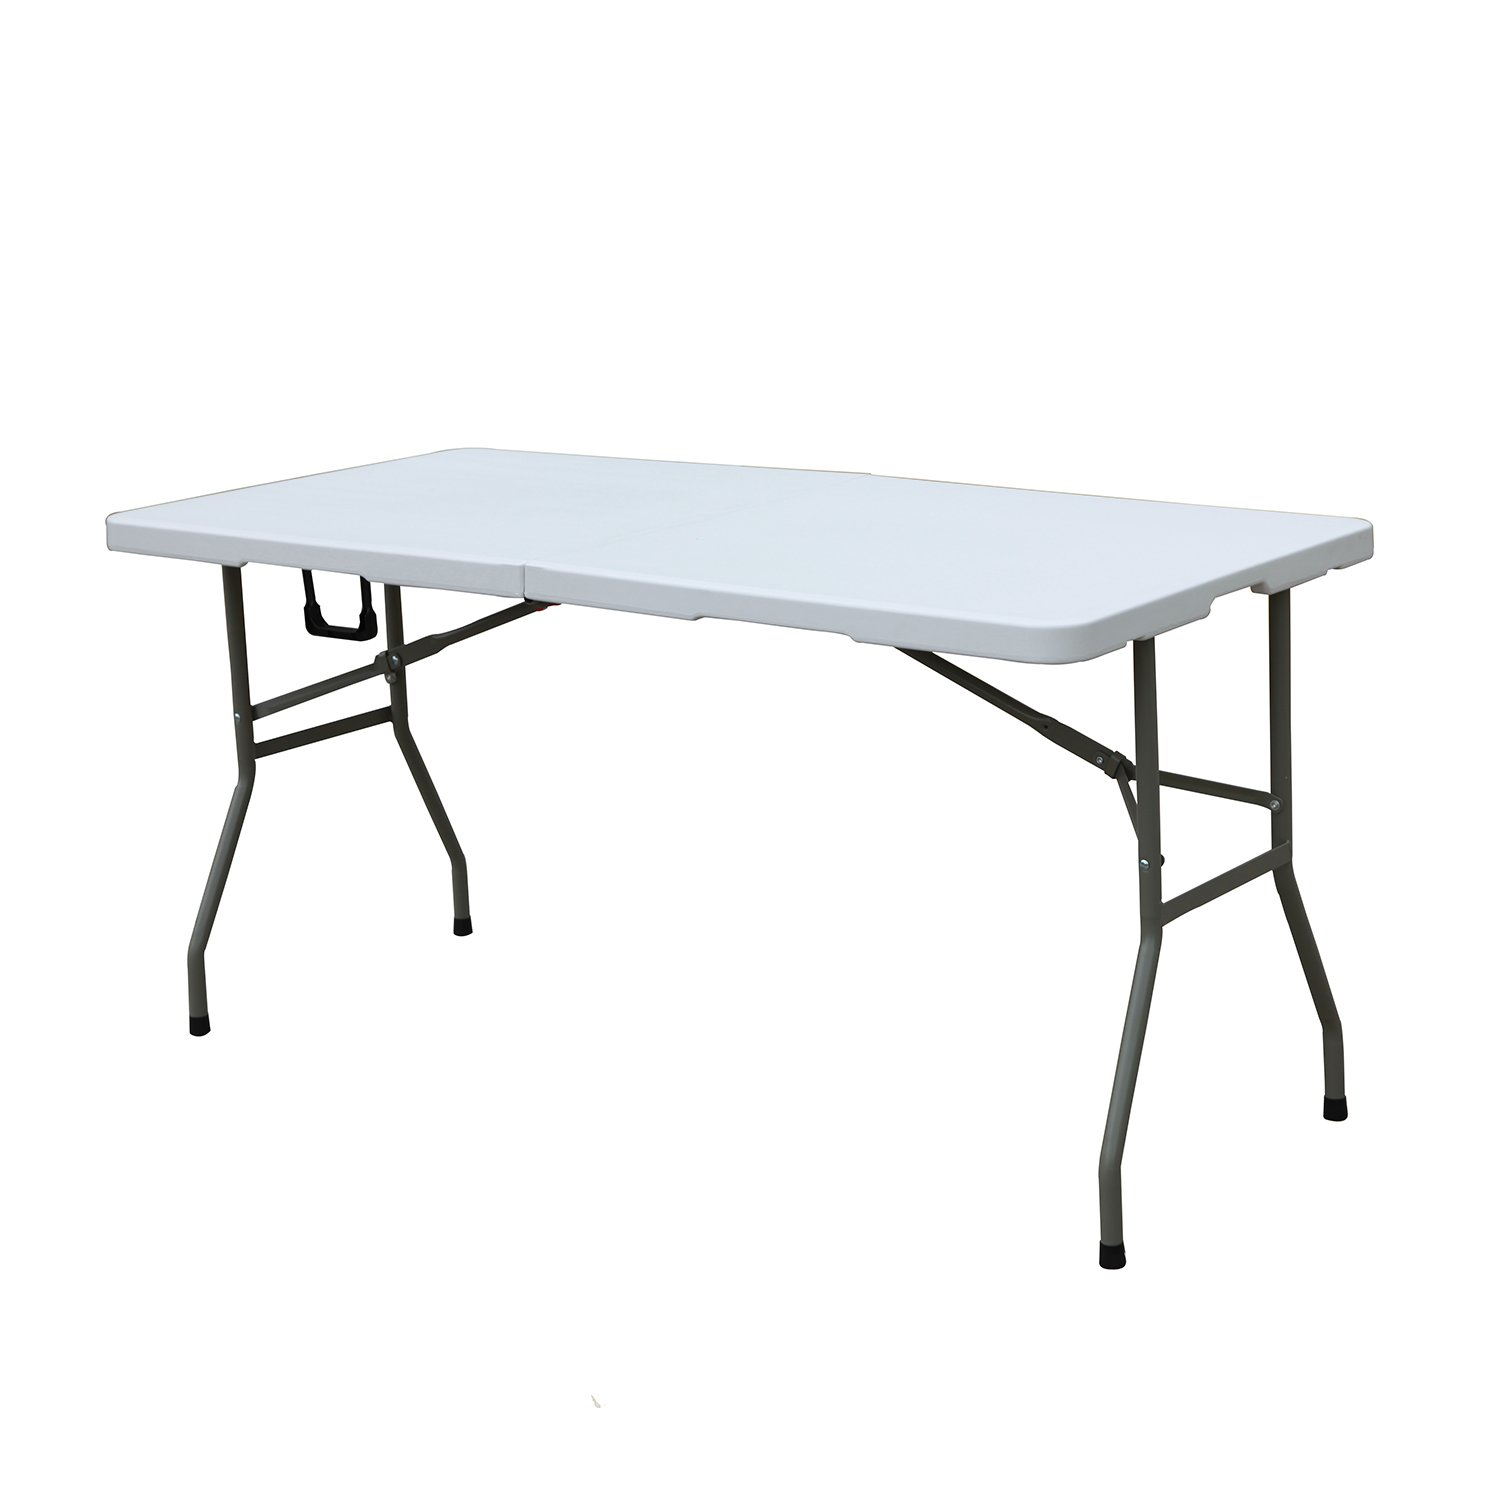 Dland 60 Quot Camping Folding Table Portable Desk Outdoor